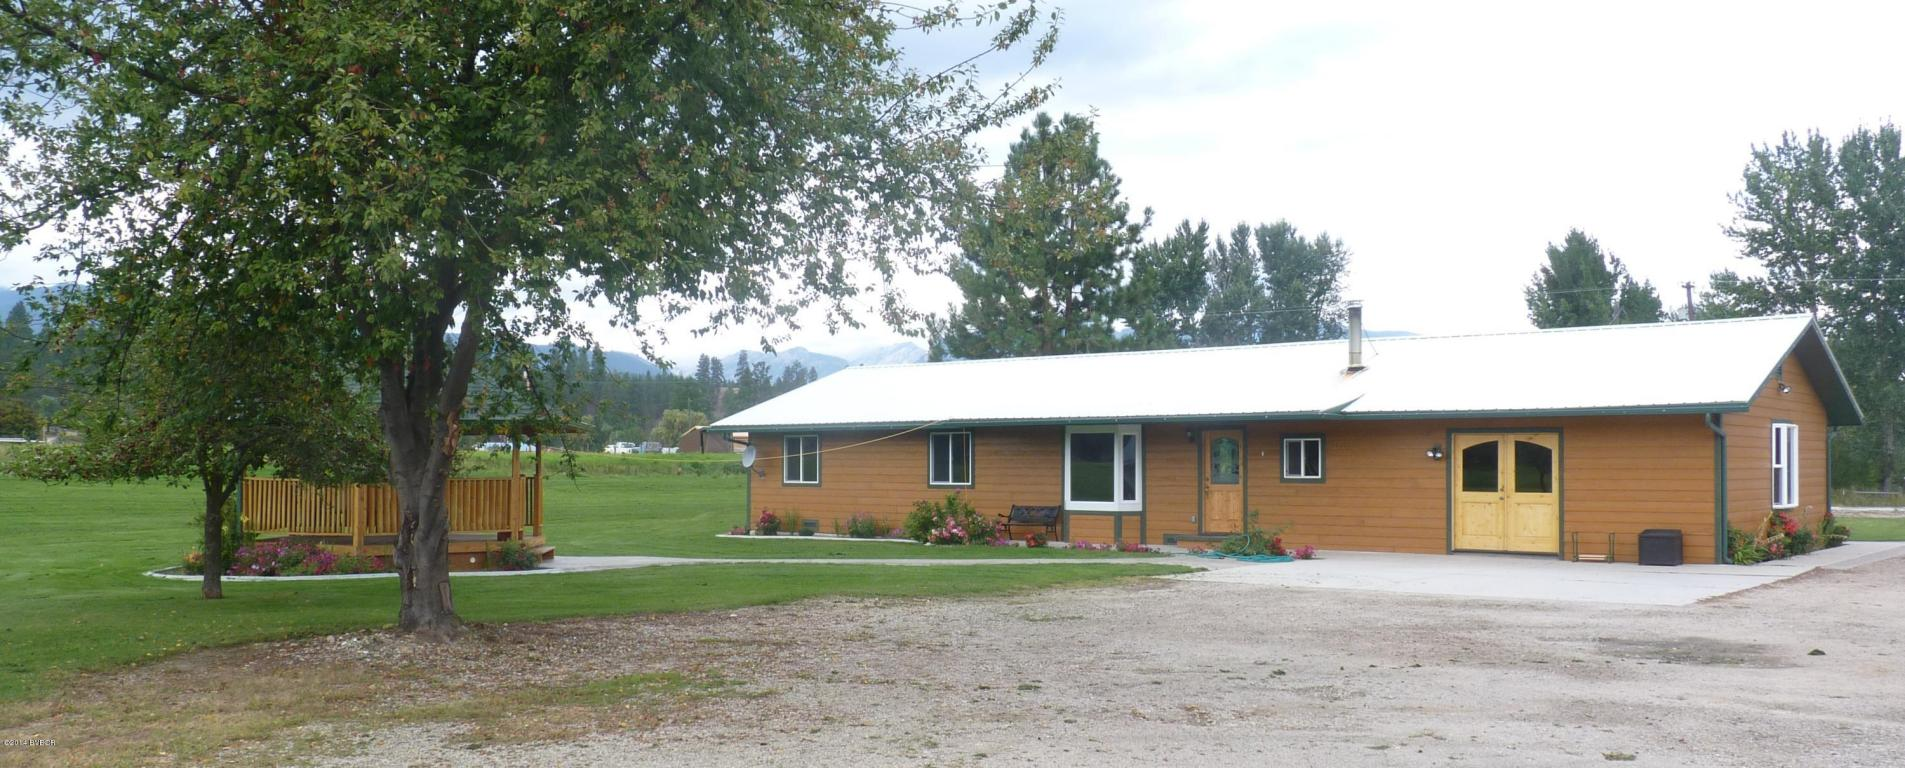 3137 Us-93, Darby, MT 59829